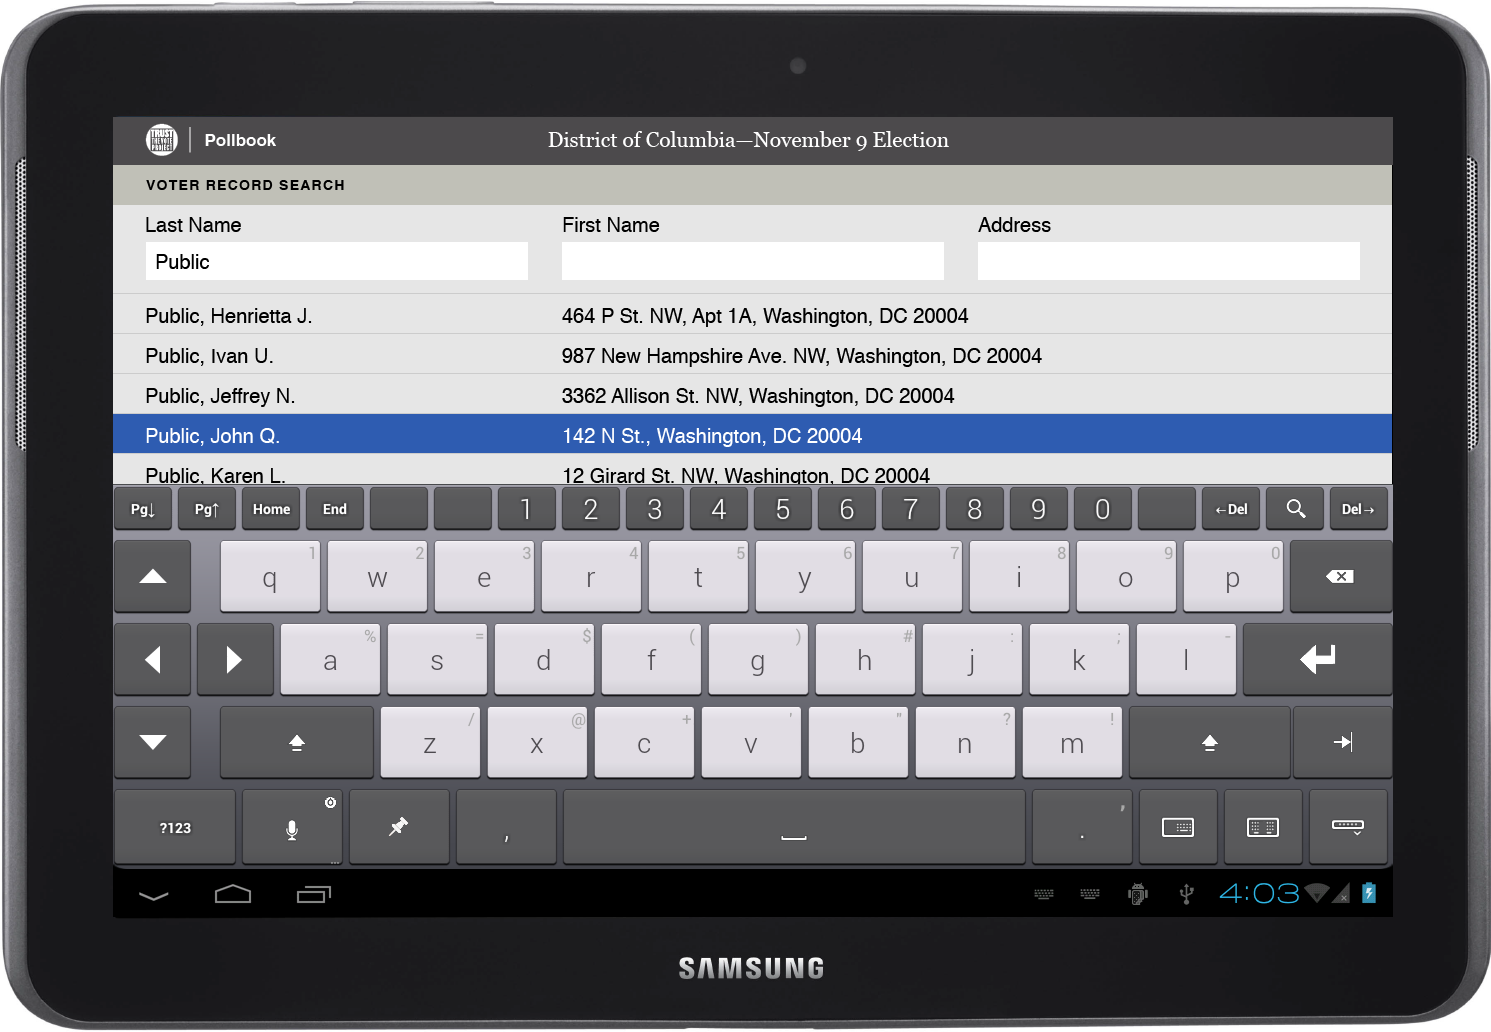 Pollbook_Samsung_Tablet_1_search.png